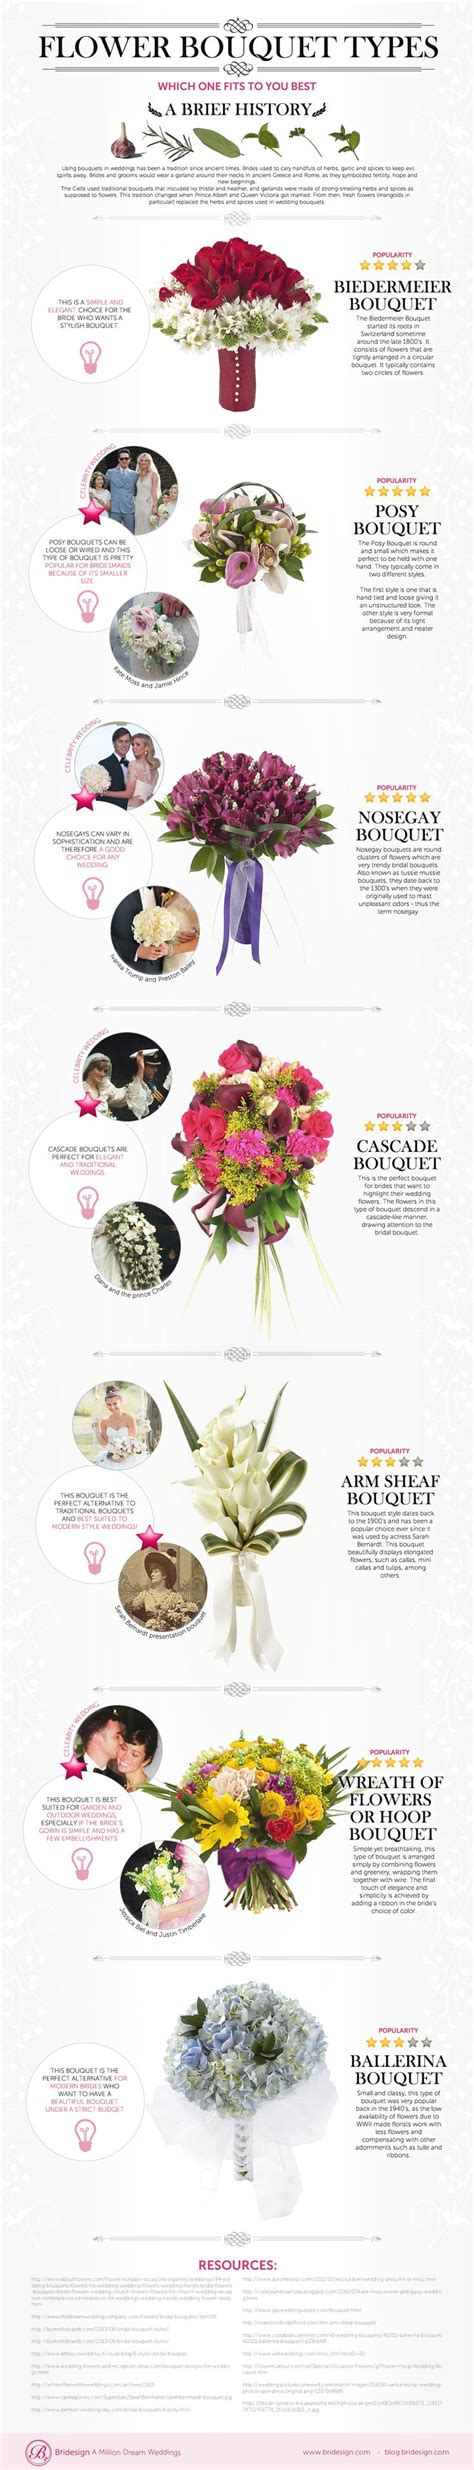 a florist is advertising five types of bouquets types of flower bouquets for weddings flowers pinterest